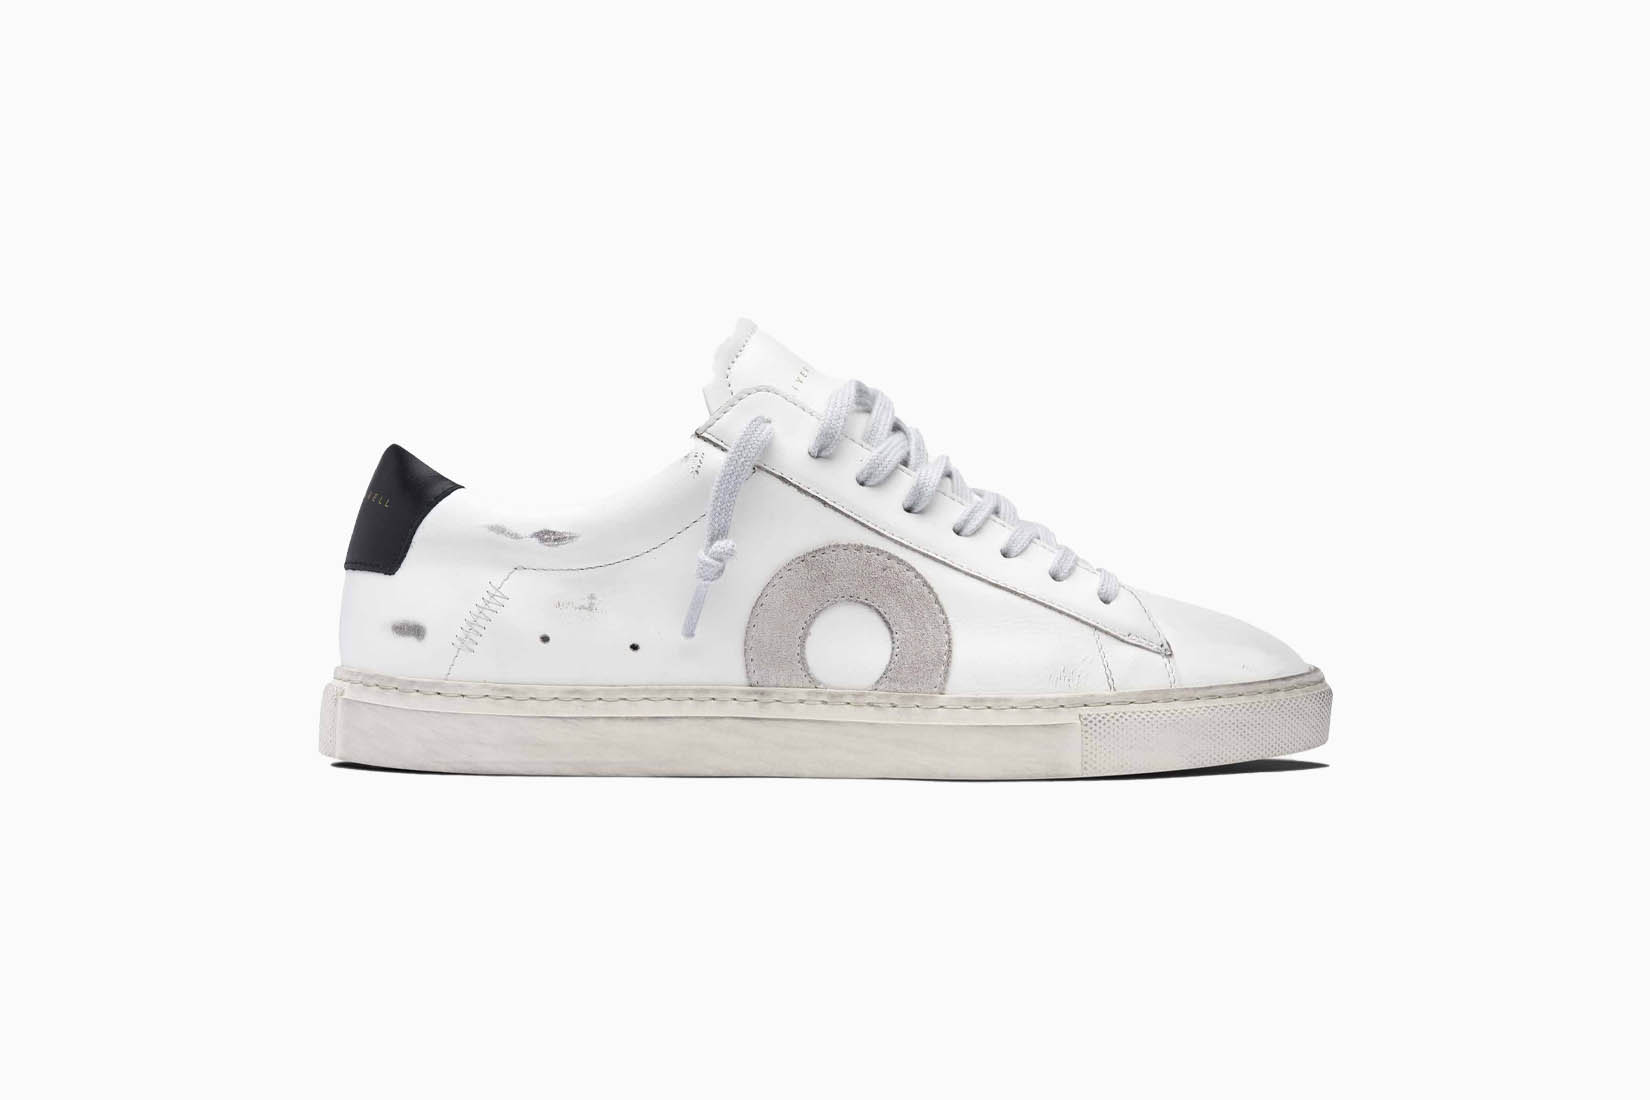 best casual shoes men oliver cabell low 1 review Luxe Digital